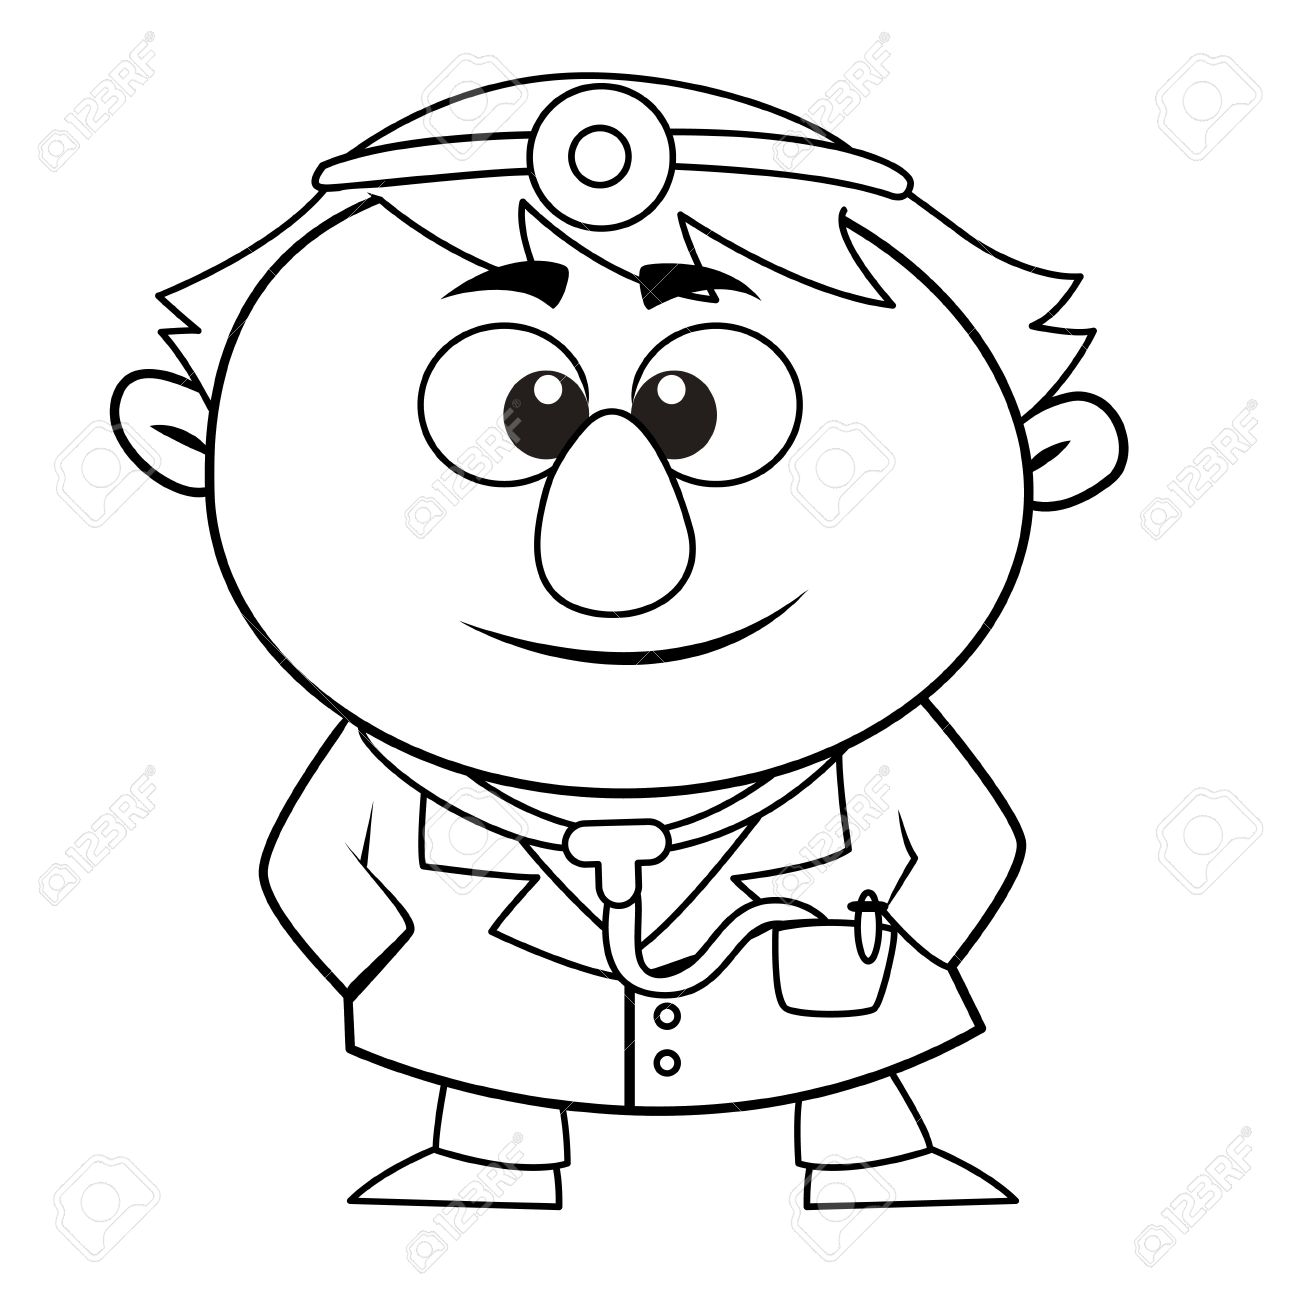 Black And White Coloring Page Outline Of A Doctor Royalty Free.